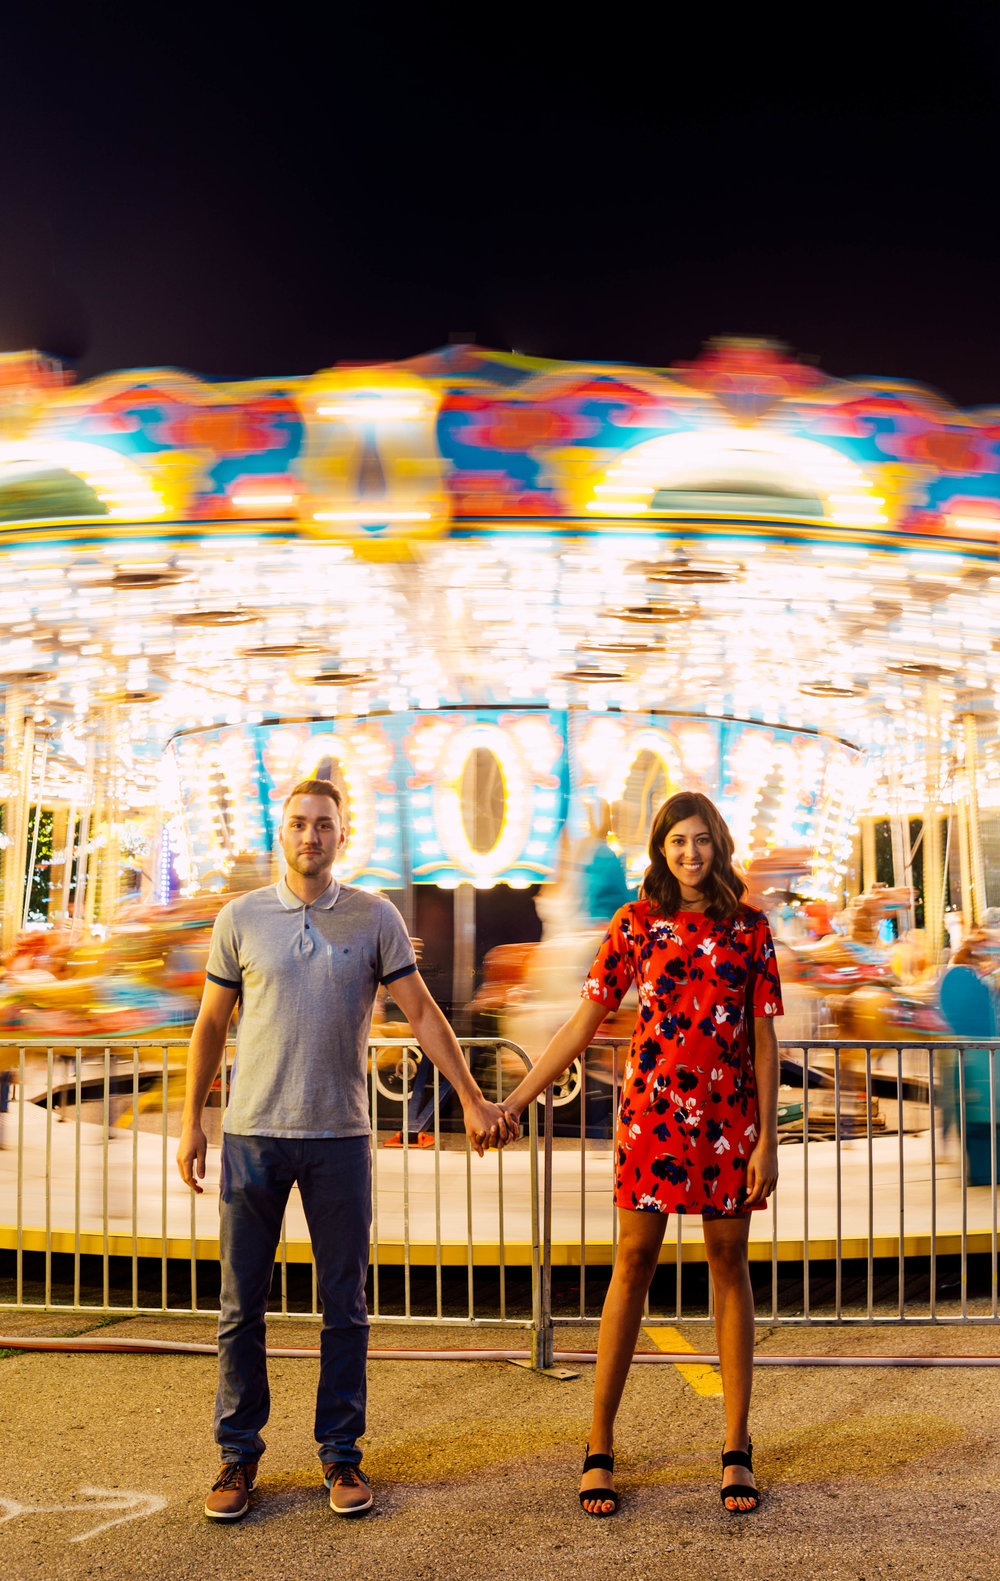 Engagement_Photography_Carnival_Fair-youthebestphotos-21.jpg